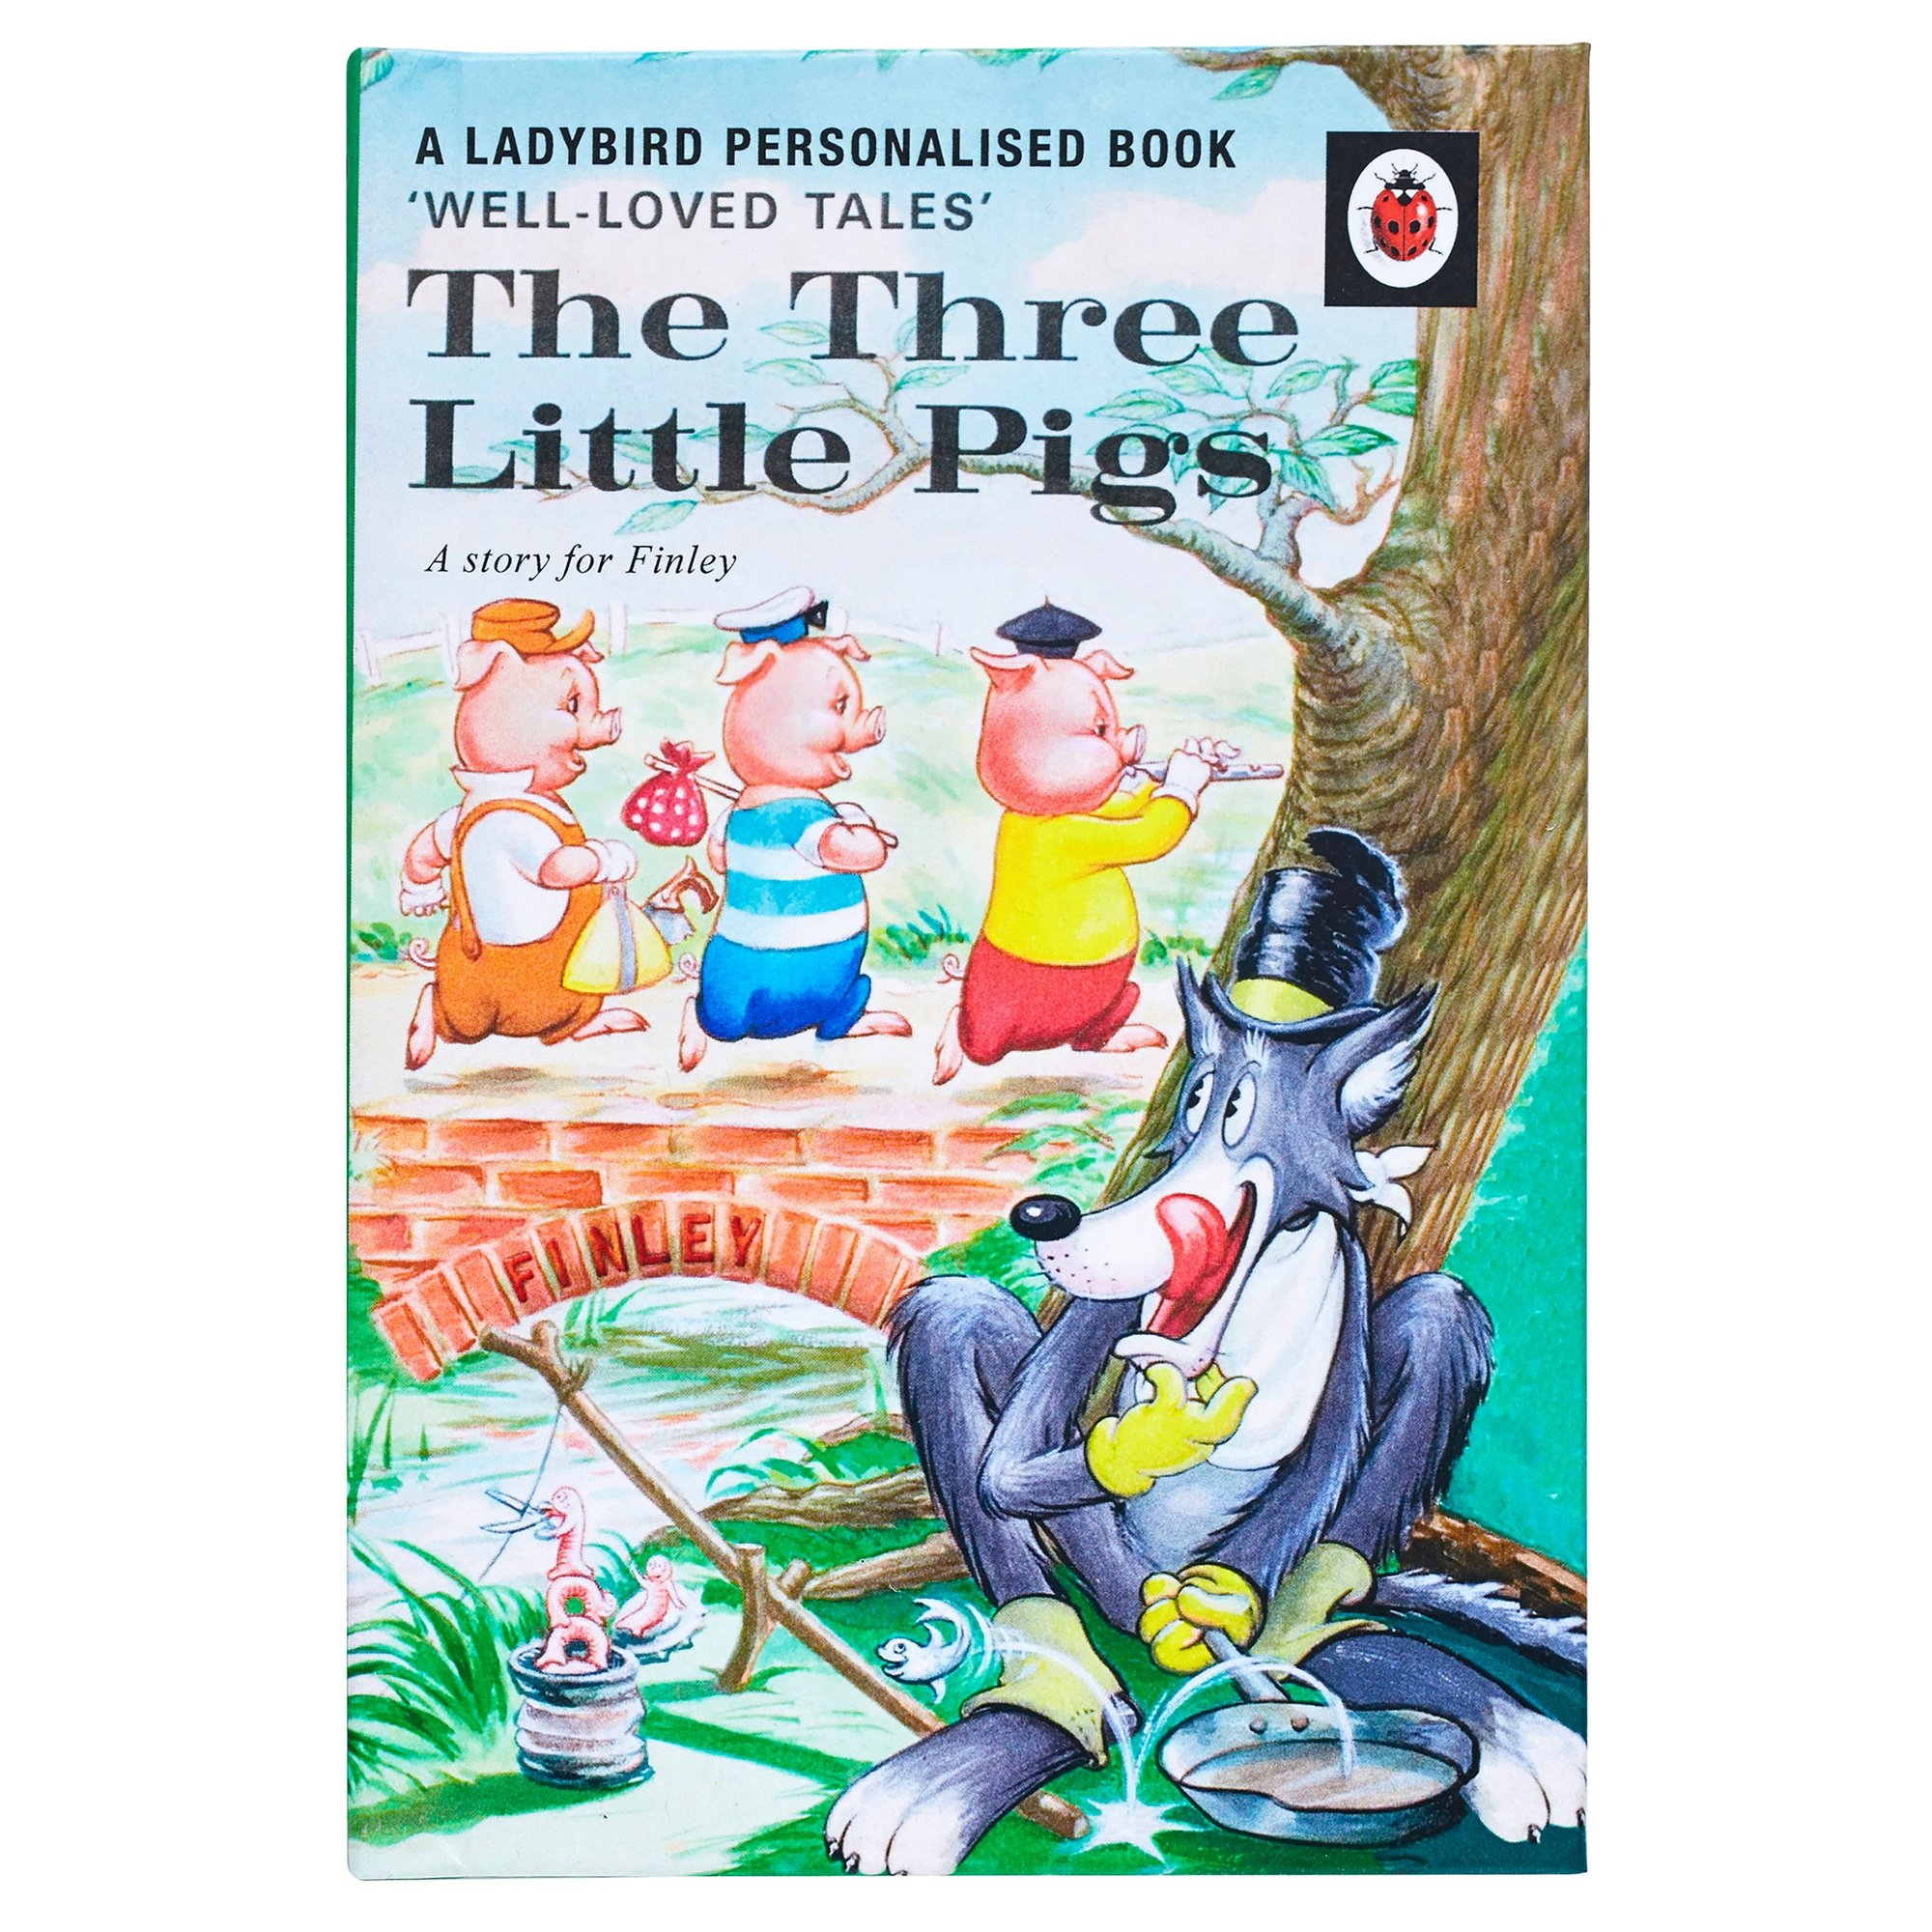 Image of Personalised Ladybird Book: The Three Little Pigs